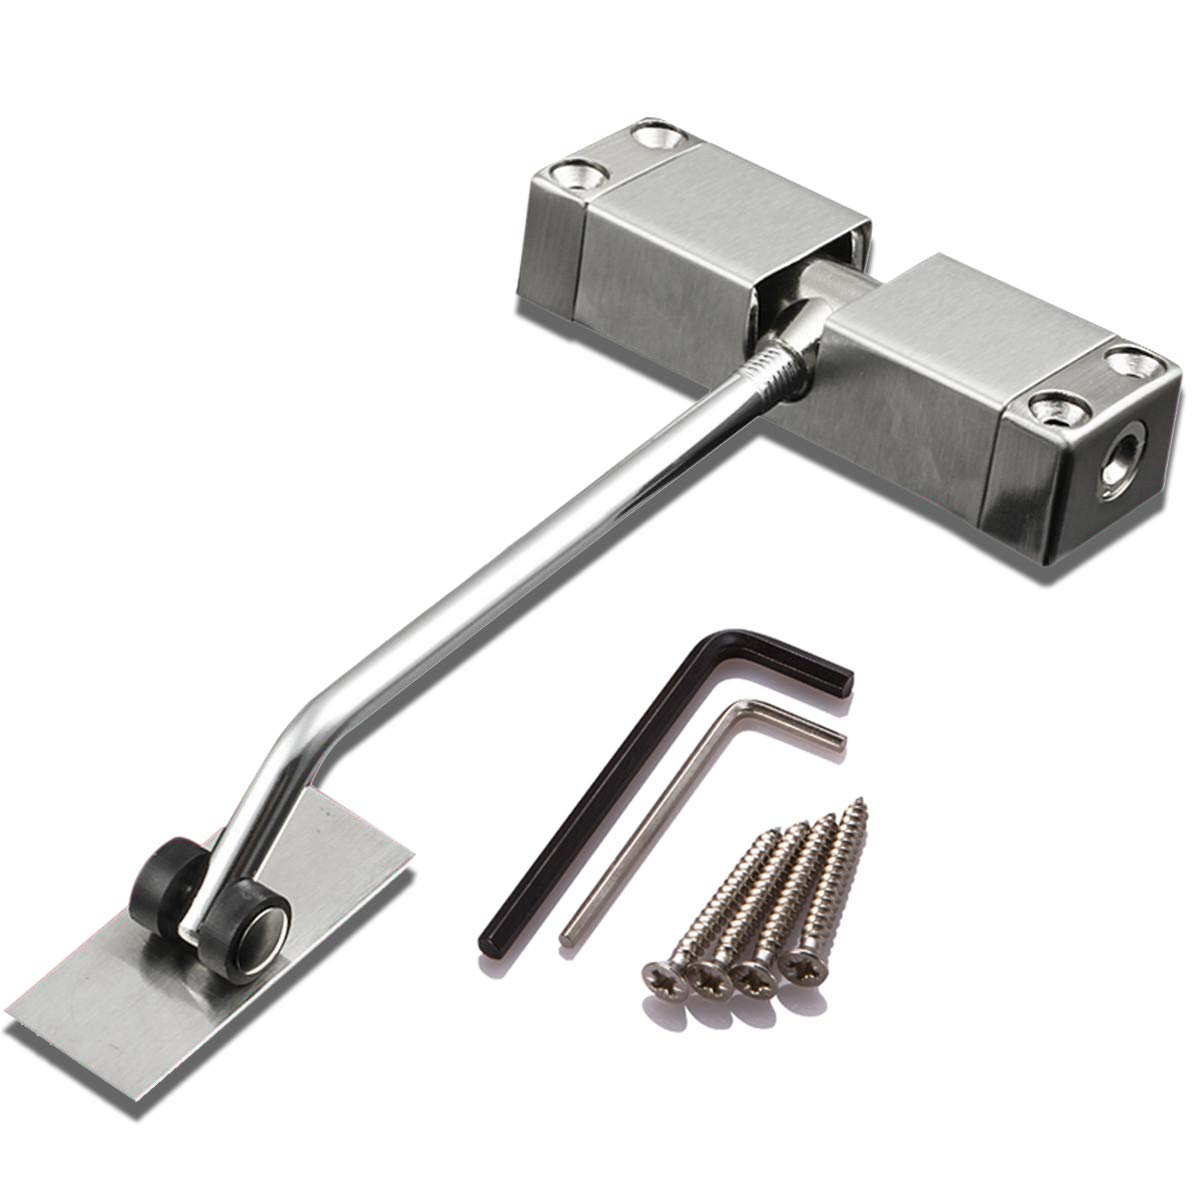 SIXDEFLY Automatic Mounted Spring Door Closer Stainless Steel Adjustable Surface Self Closing Door for Residential/Commercial Use